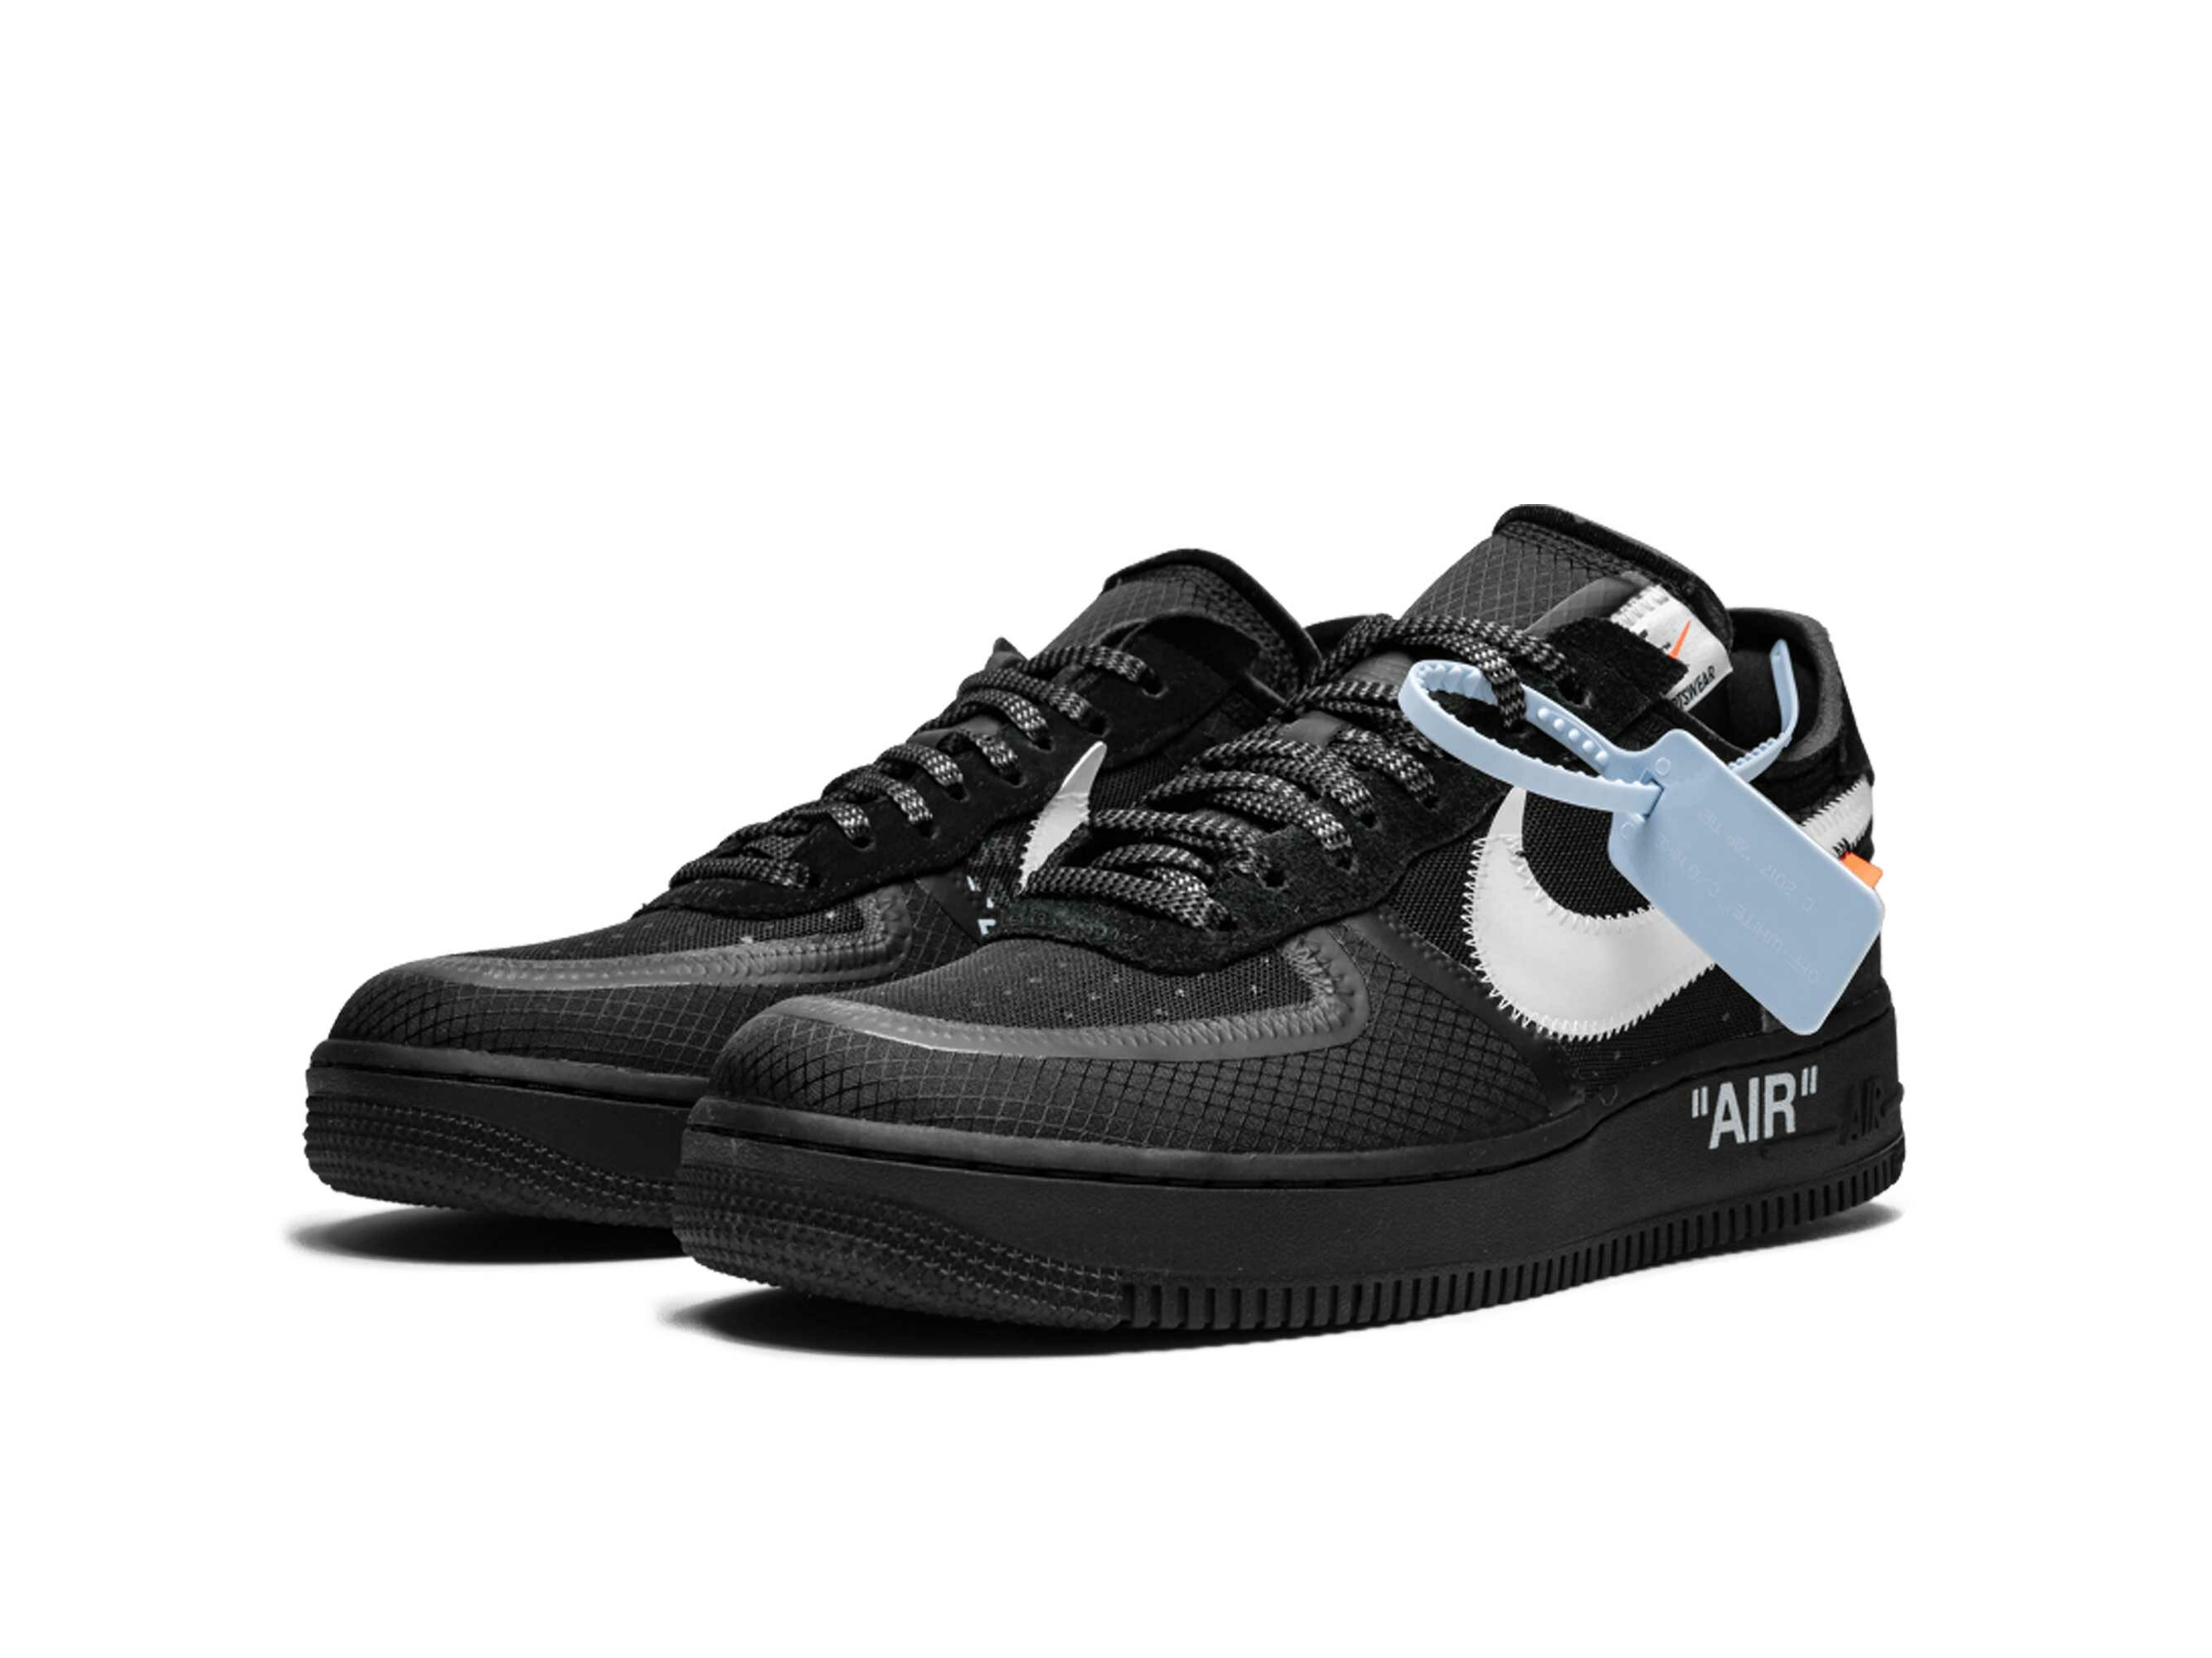 off white x nike air force 1 low black AO4606_001 купить